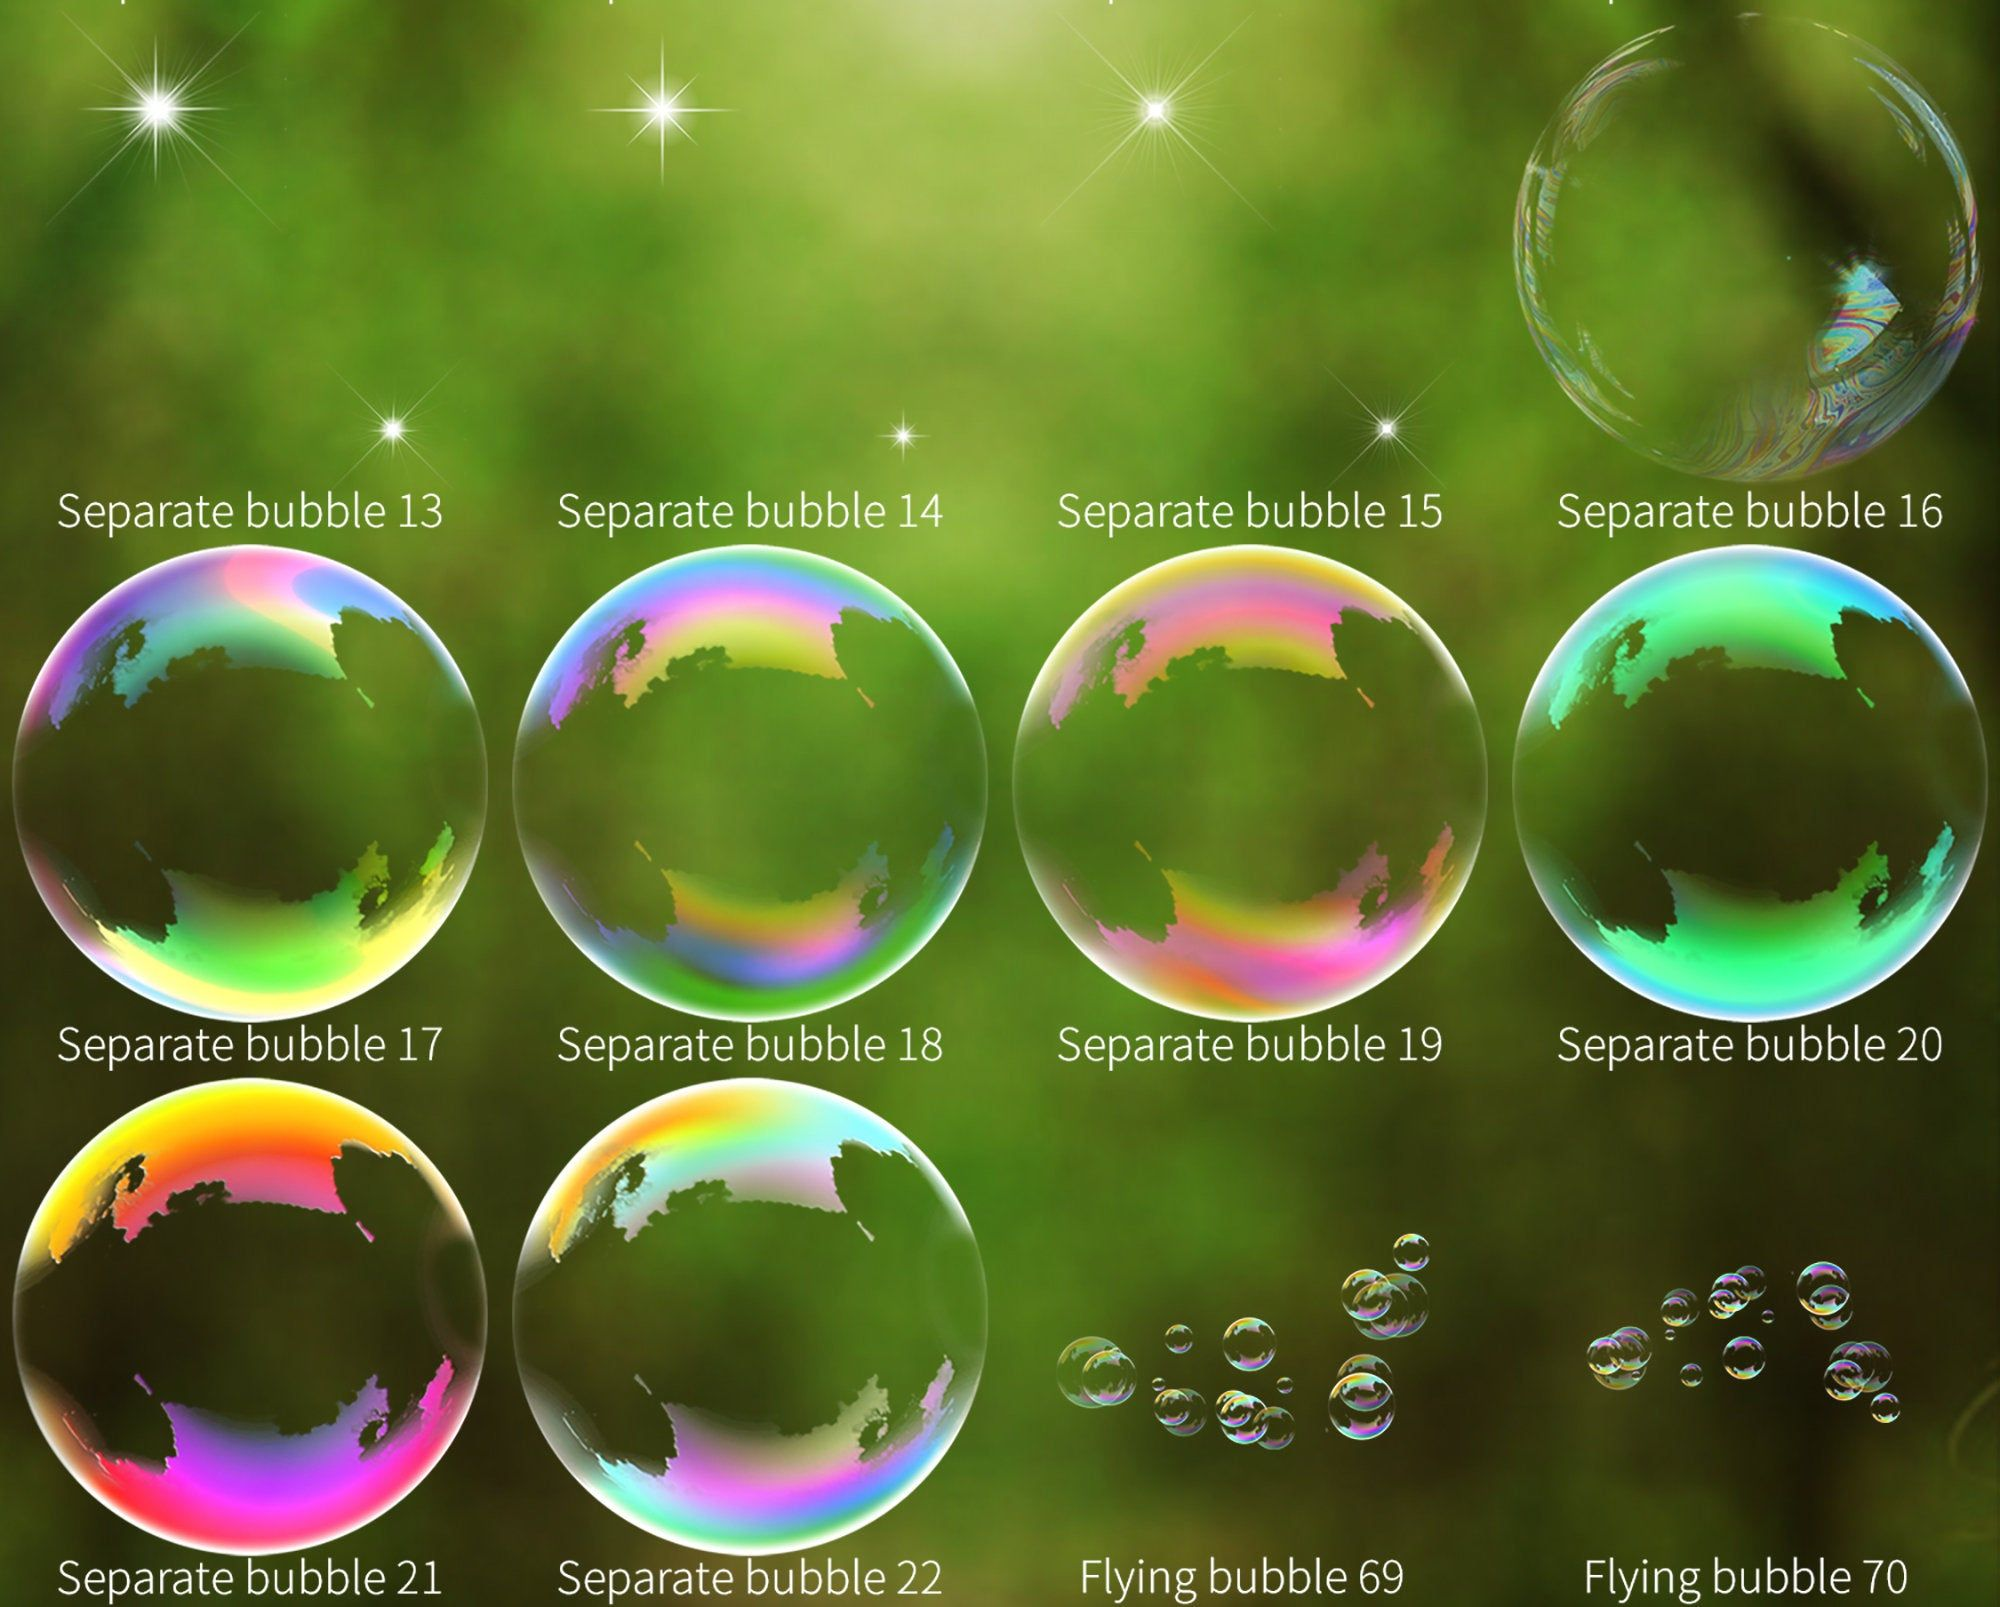 70 Blowing Soap Bubble Photoshop Overlays Wedding Kids Etsy Photoshop Overlays Soap Bubbles Bubbles Photography